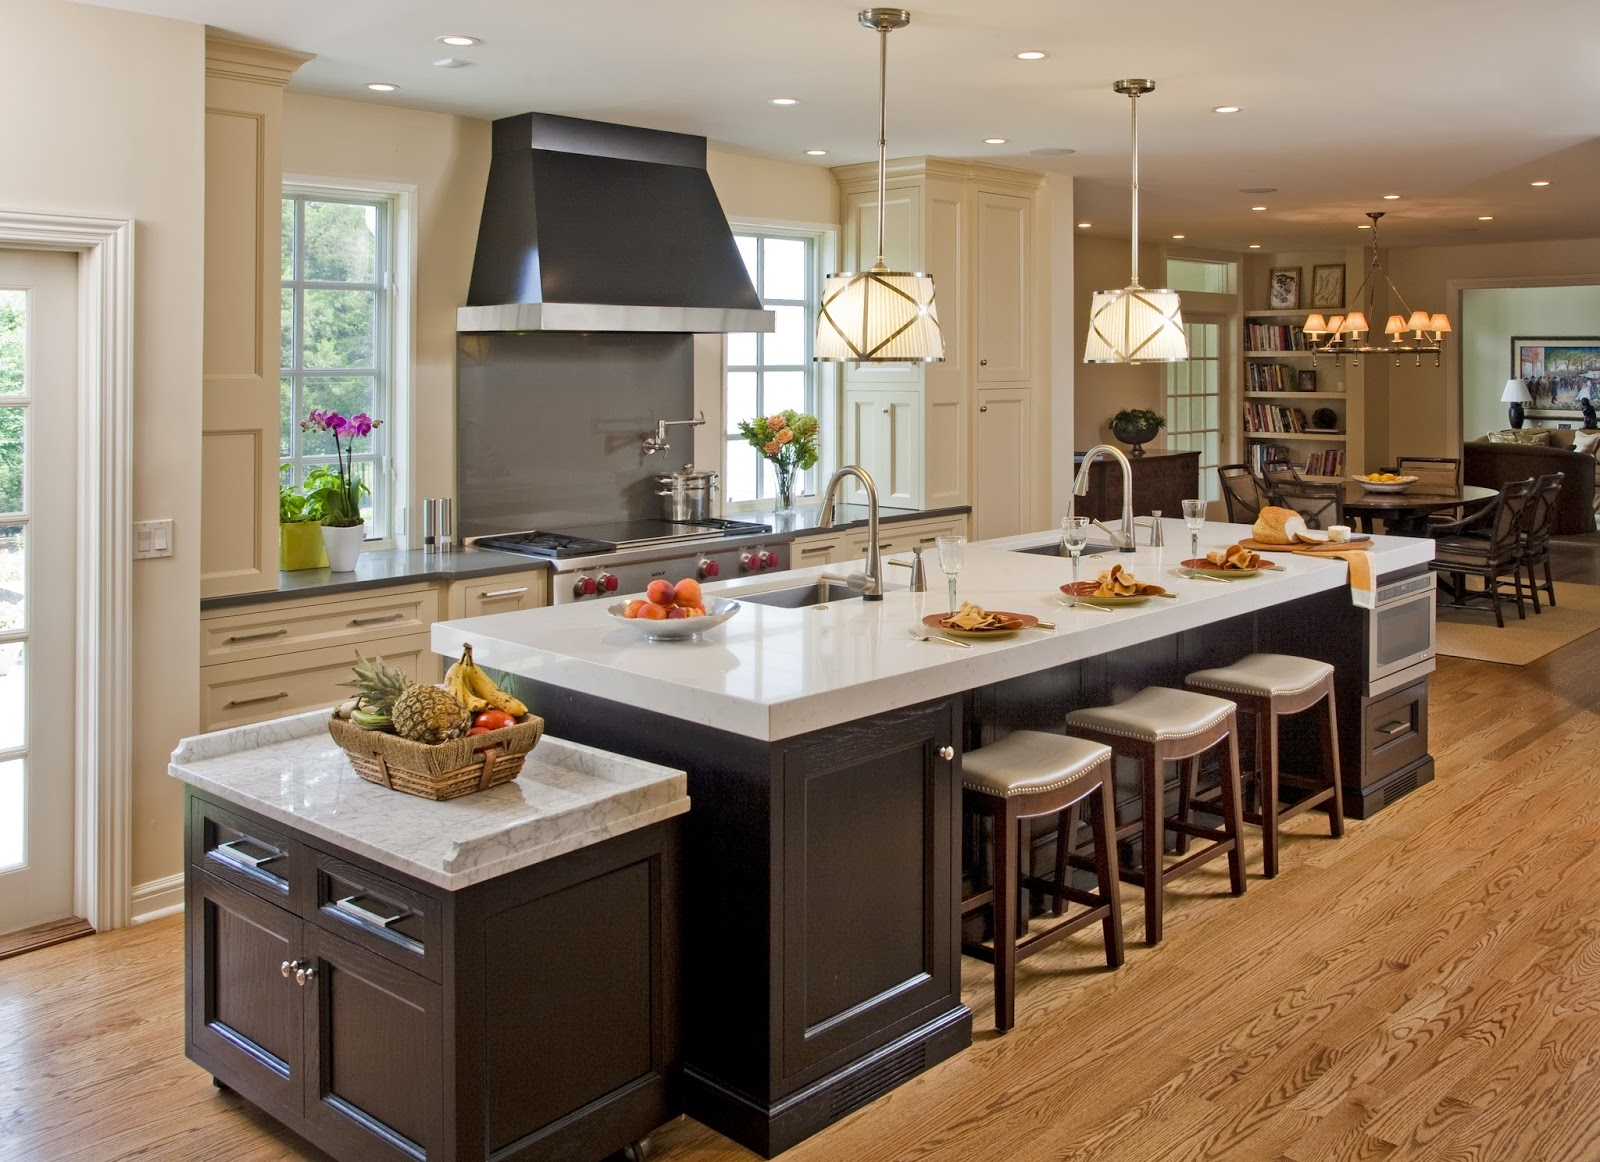 Check Out Houzz For Superior Superior Woodcraft, Inc.   Custom Cabinetry:  Latest Houzz Project